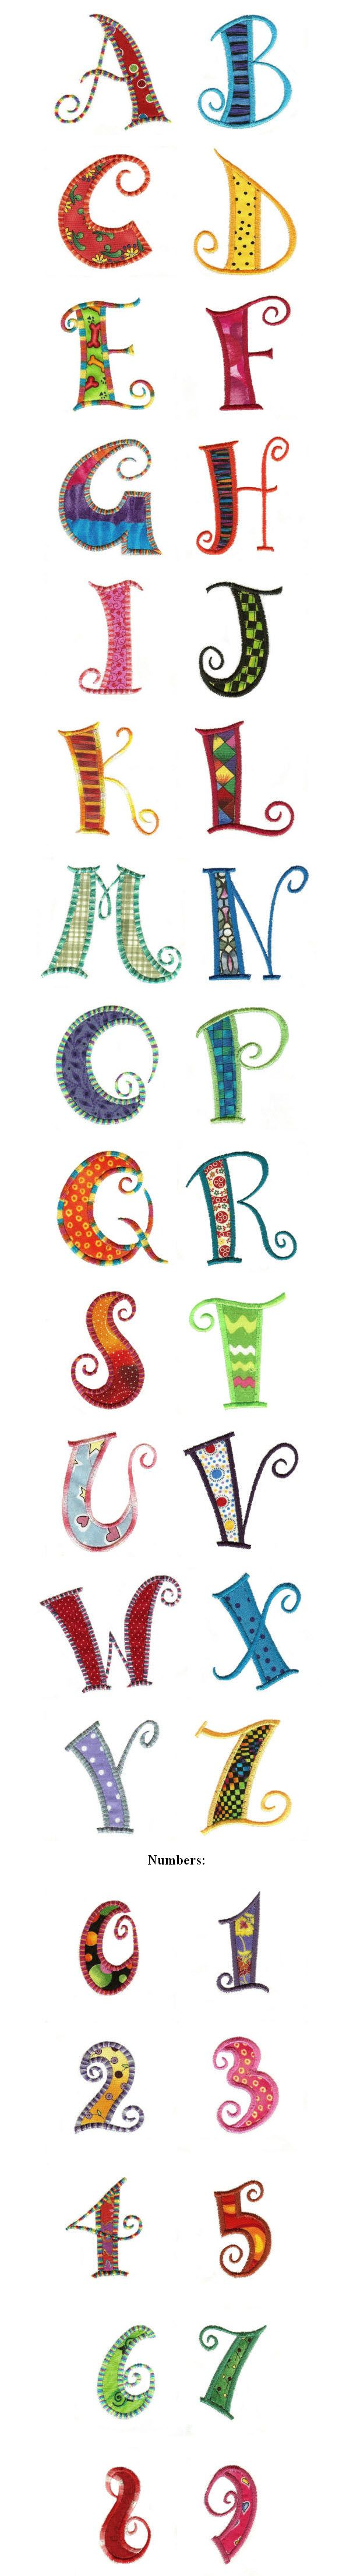 Portaoggetti Design Letters Numbers : Curly q applique letters and numbers fonts